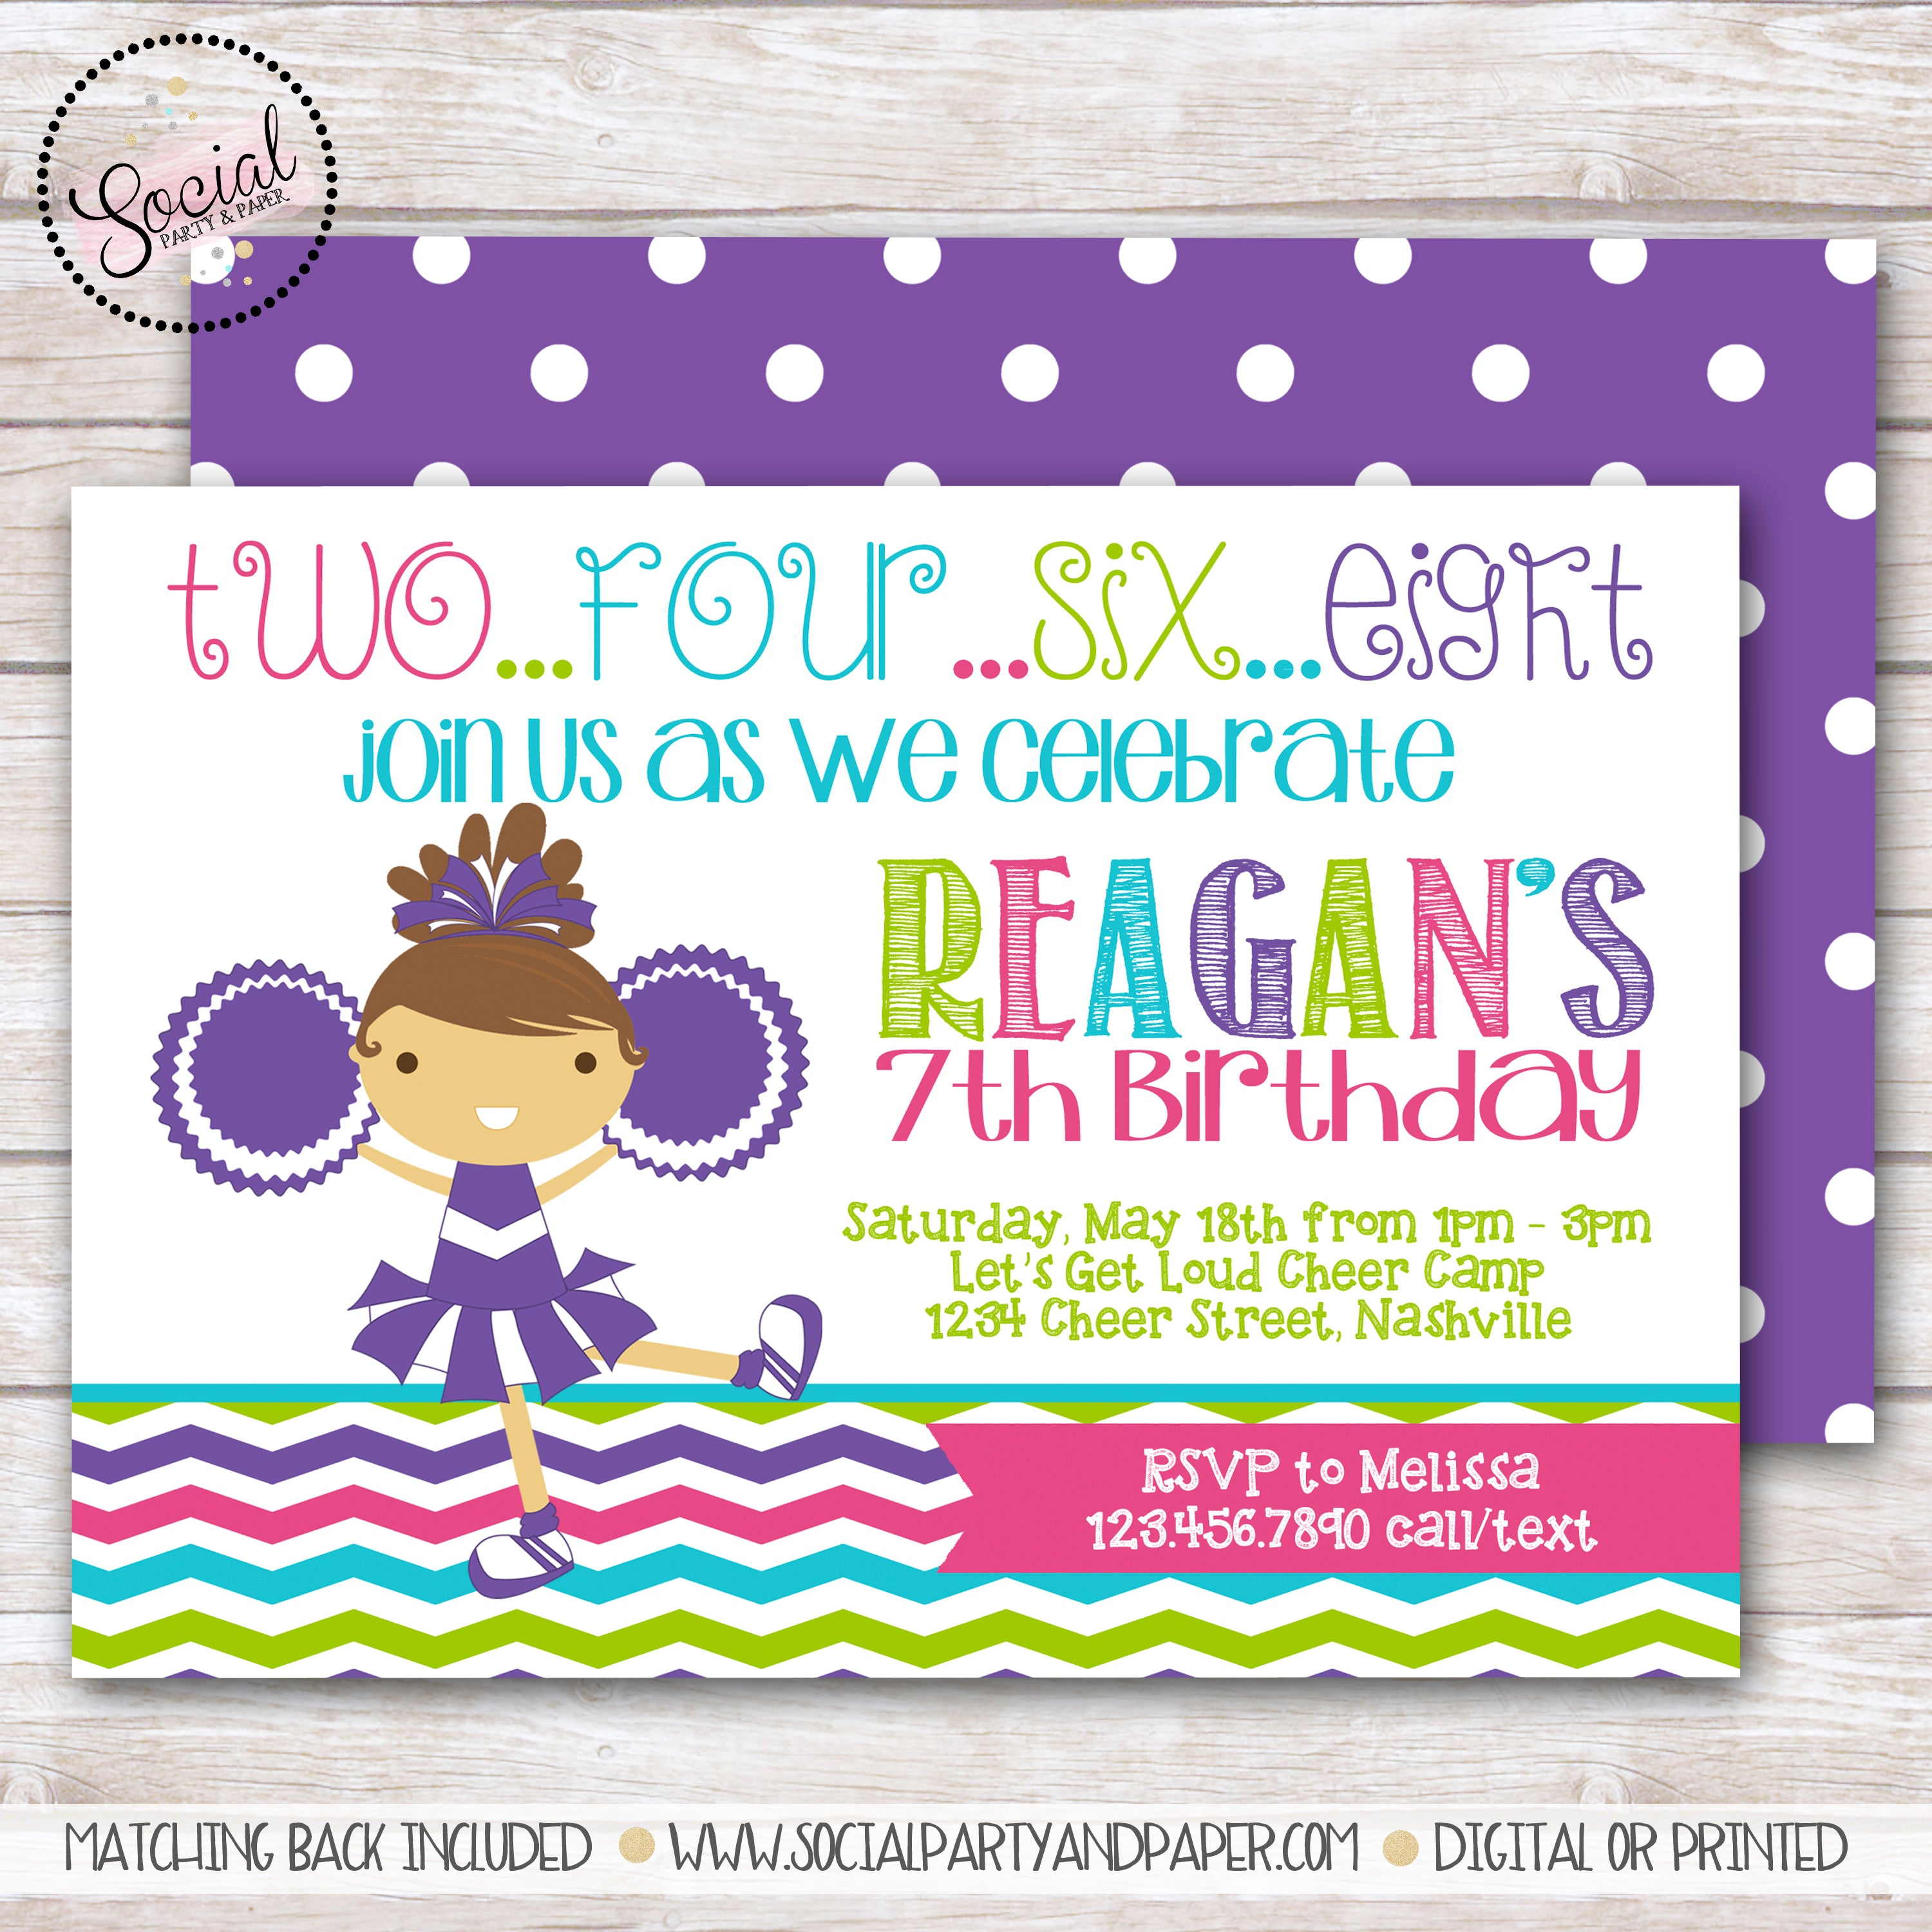 Cheerleader Girl Birthday Party Invitation Social Party Paper